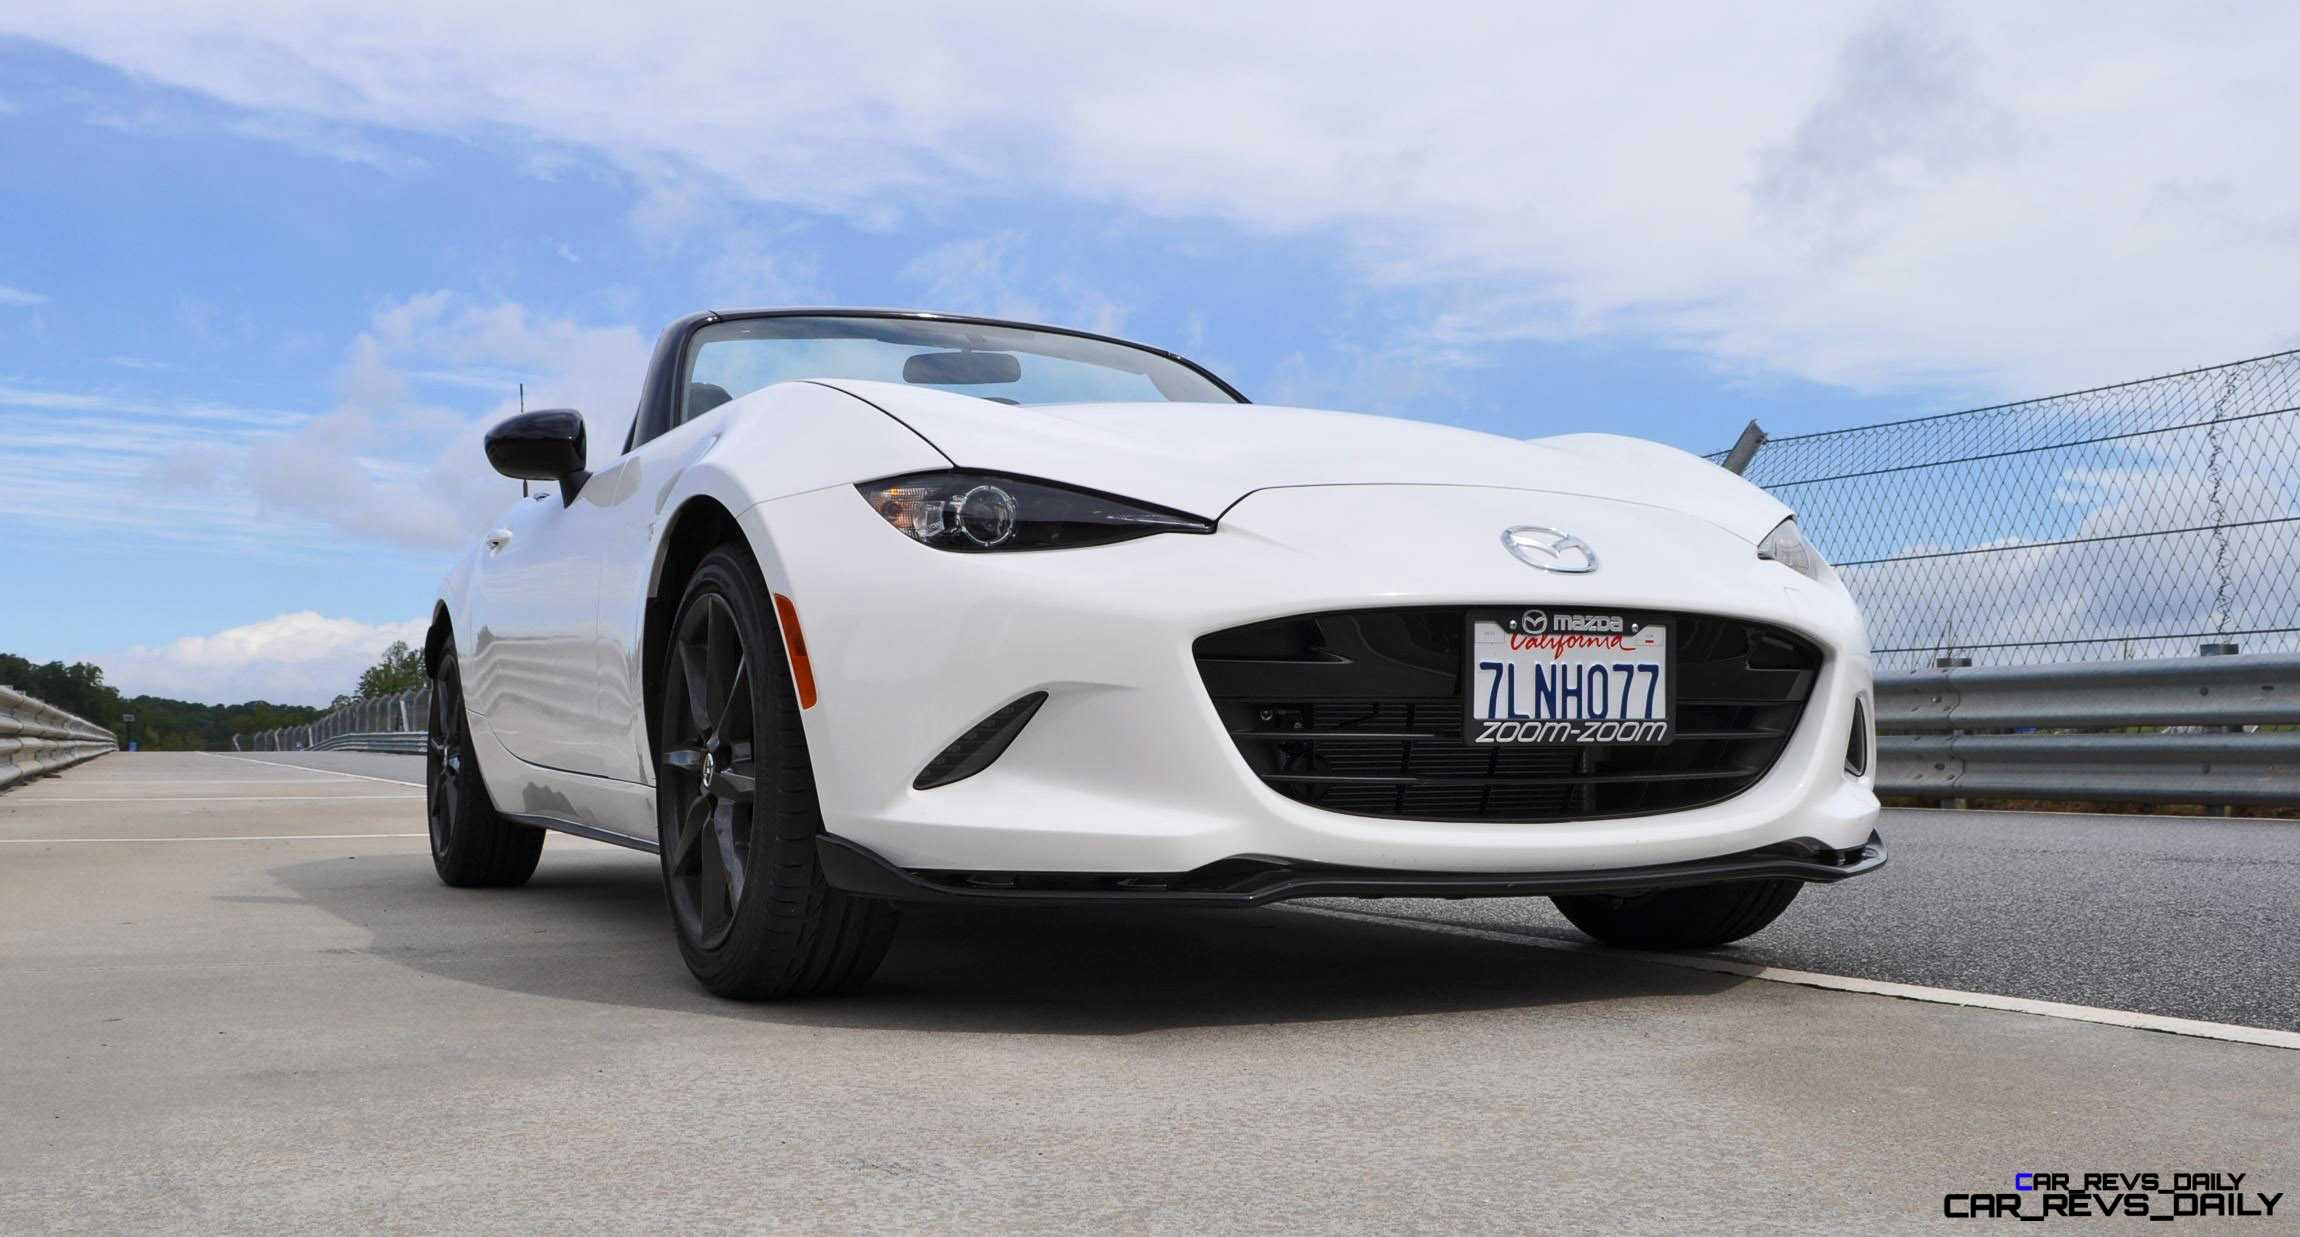 2015 Mazda MX-5 Miata Track Day 17